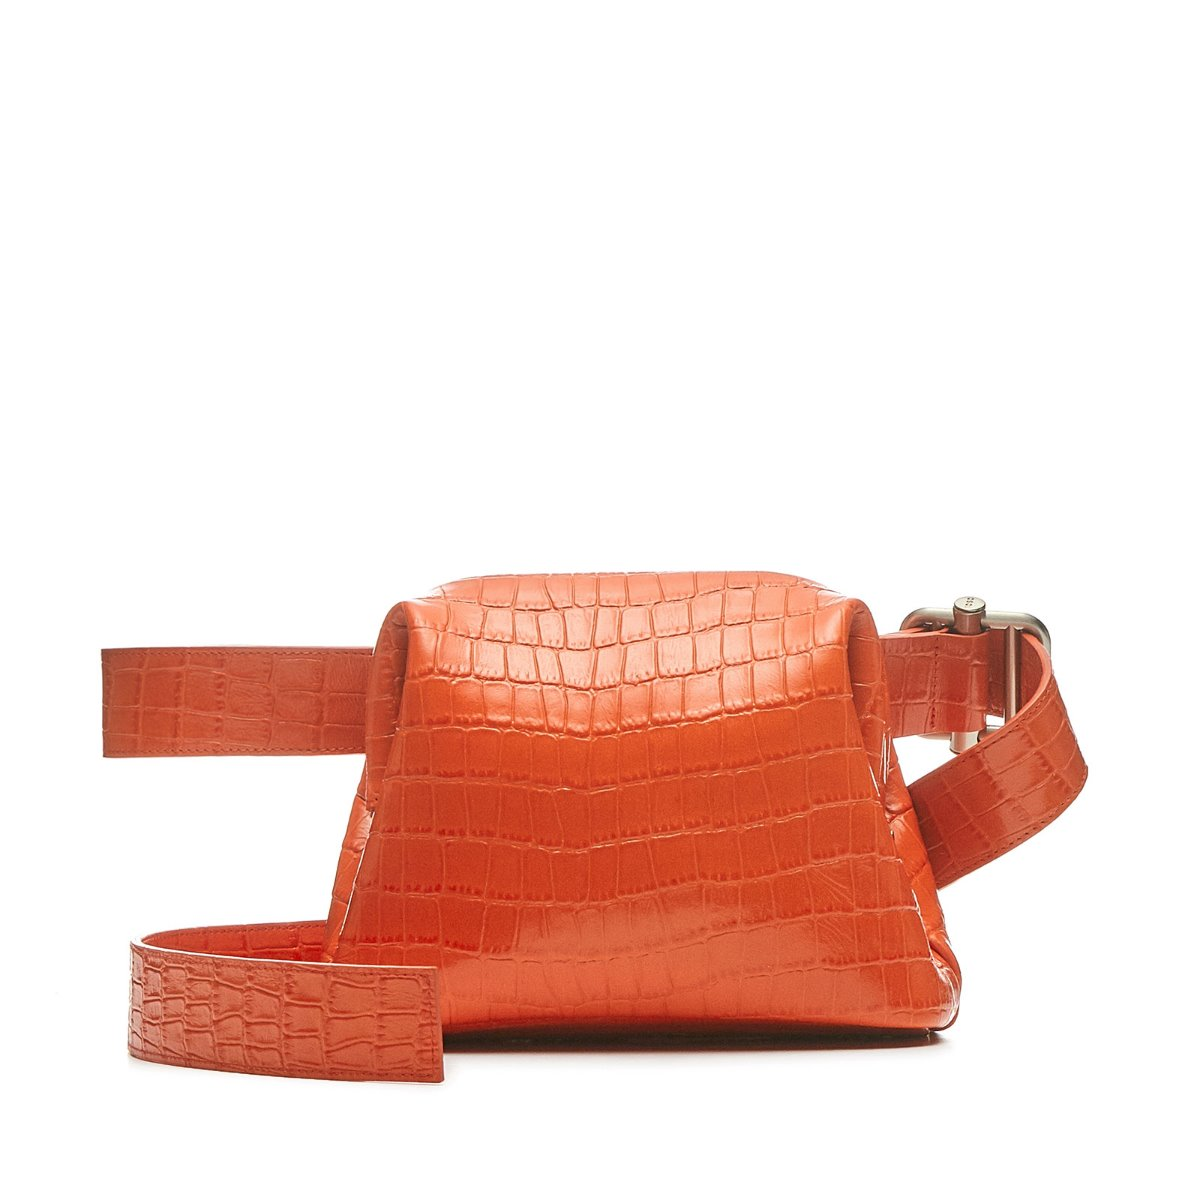 [EXCLUSIVE] MINI BROT [CROCO ORANGE]